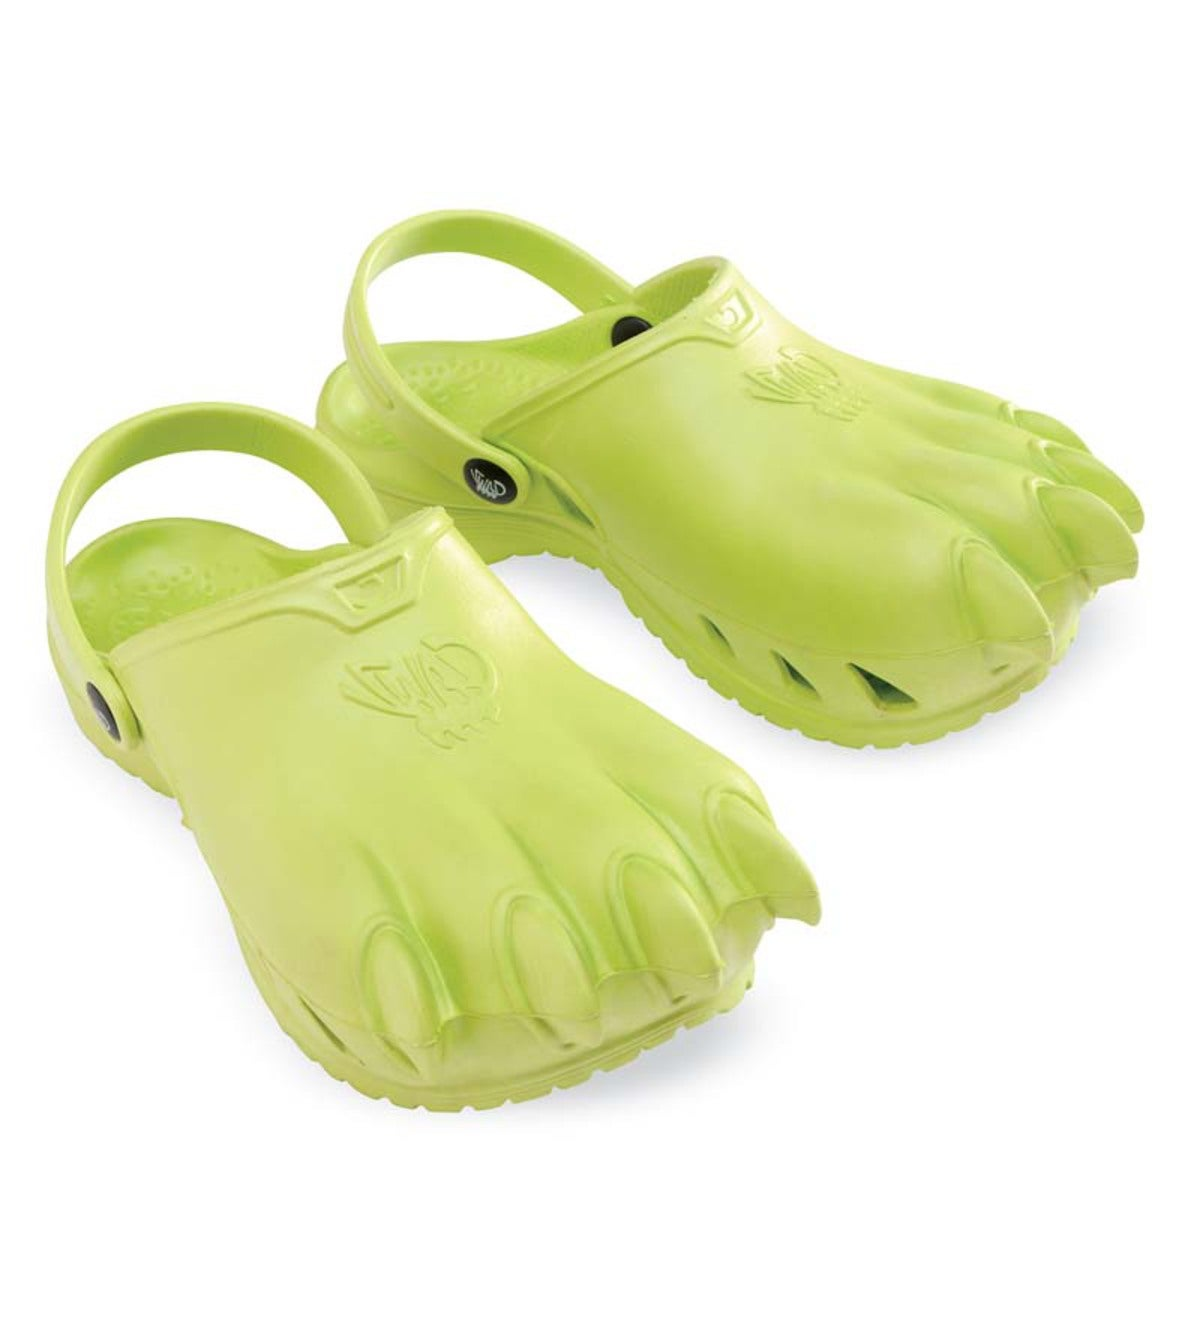 Clawz® Shoes for Kids - Green - Size 11/12